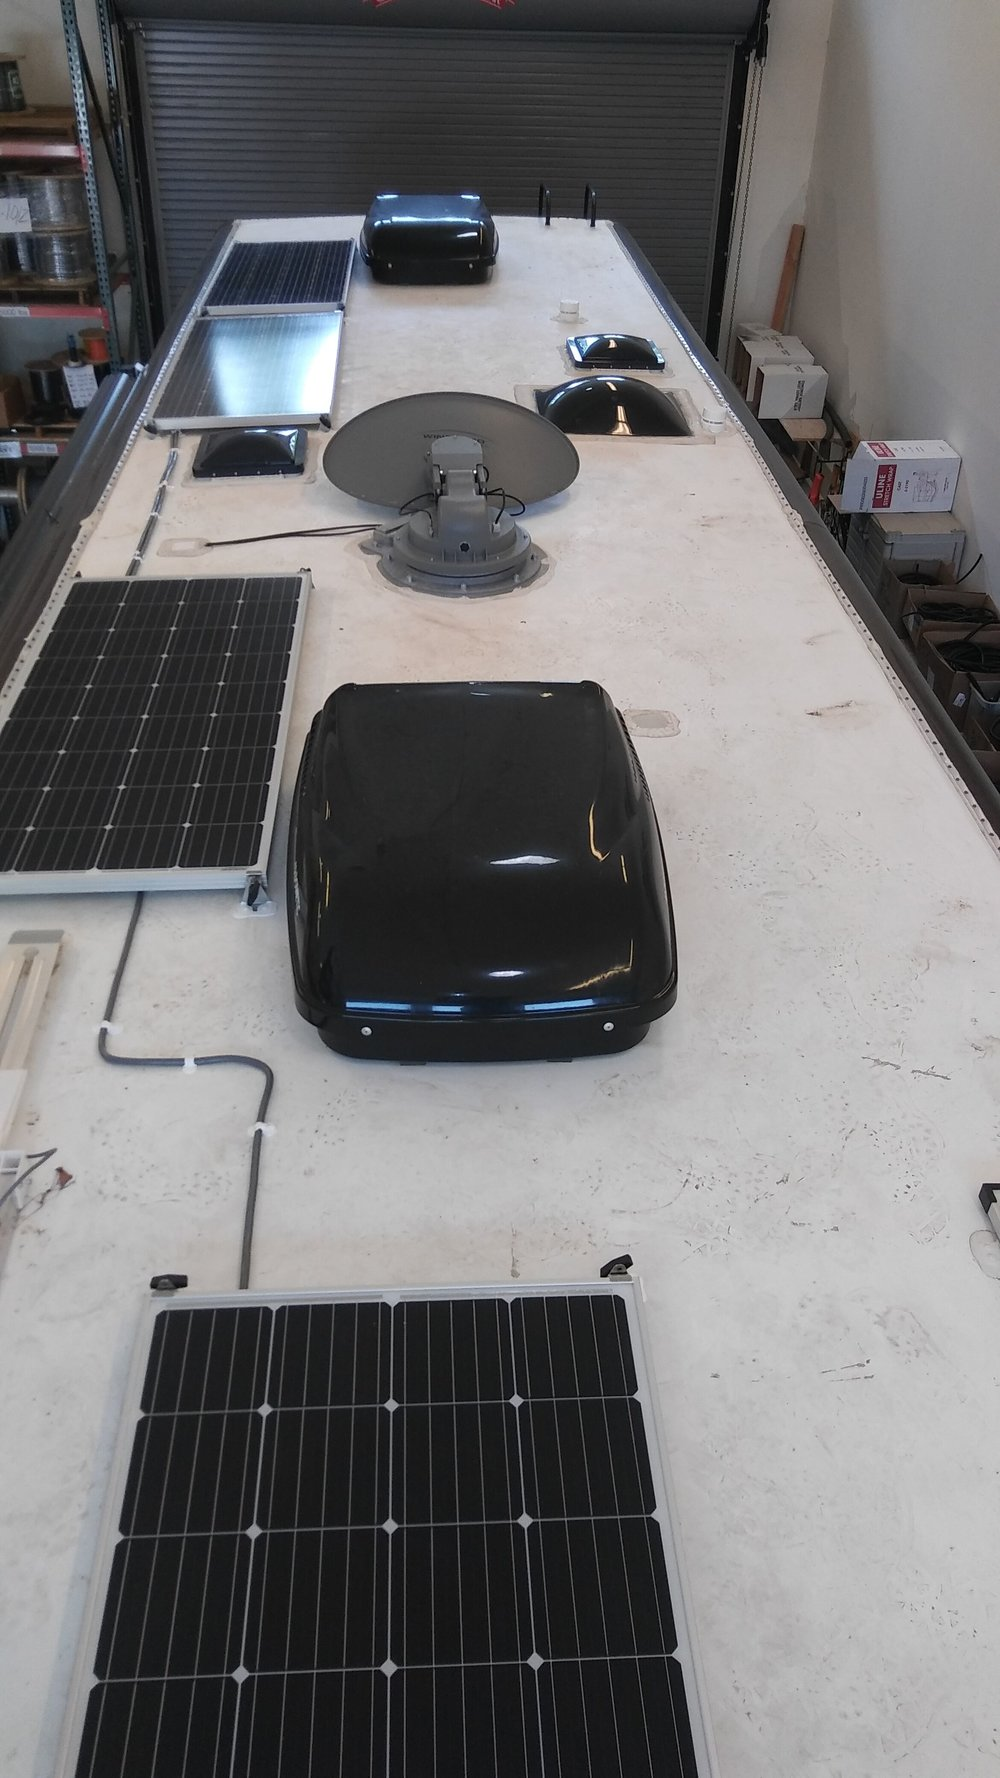 Solar Panel Installation For Rvs Trailers Am Catalina 30 Wiring Diagram 720w Charging System